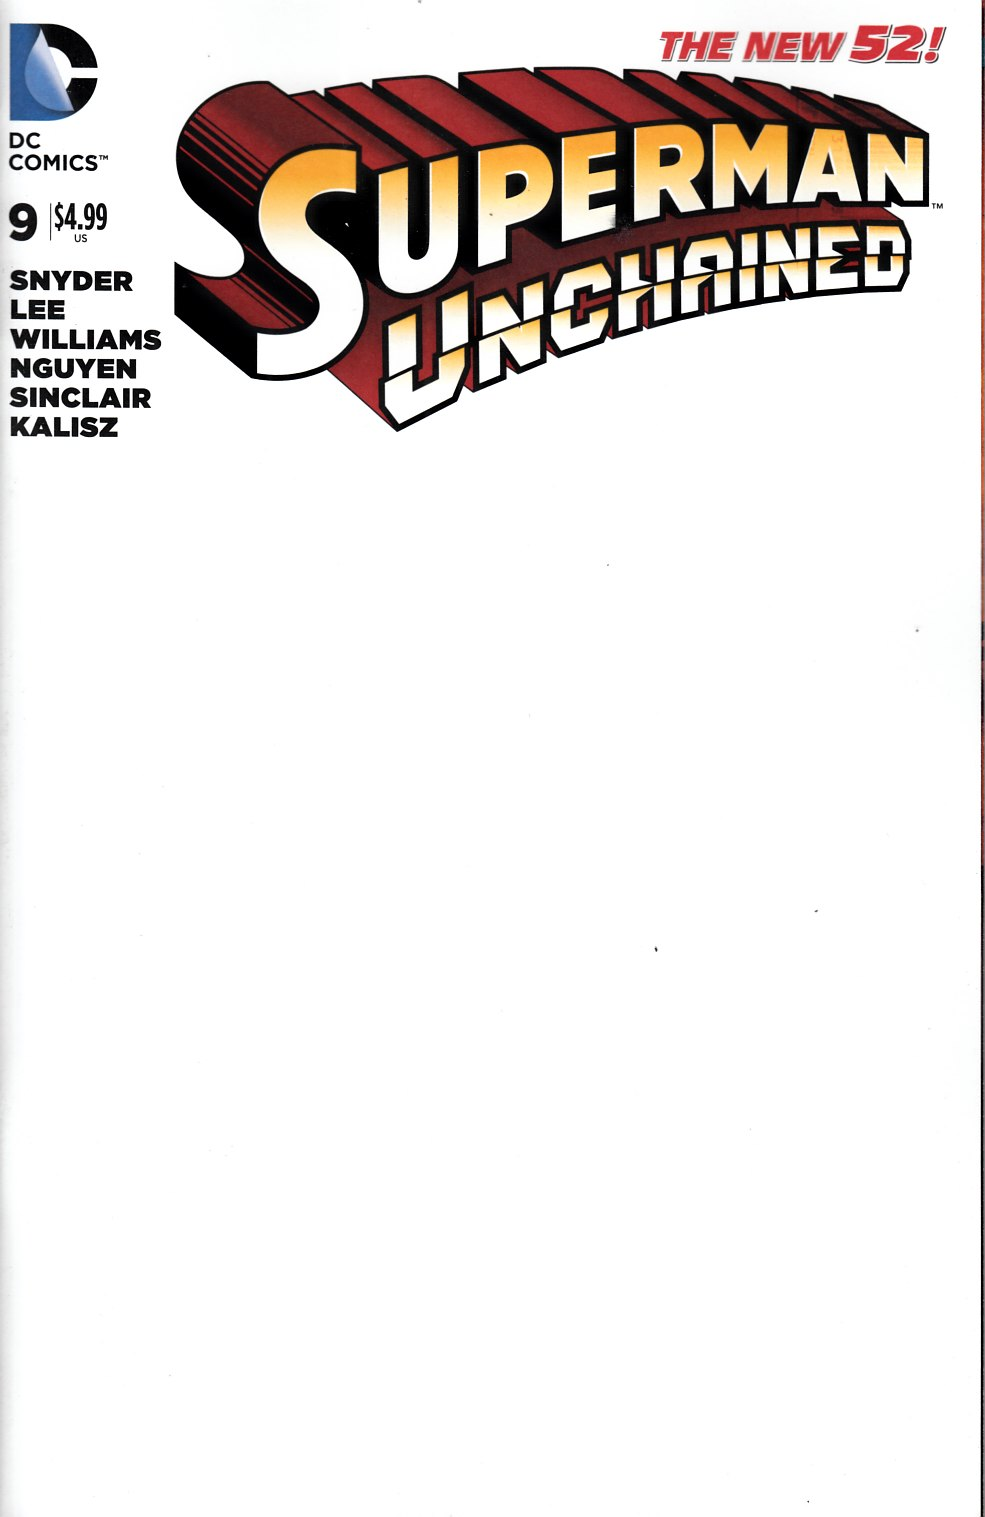 Marvel Comic Book Cover Template : Superman unchained blank cover dc comic